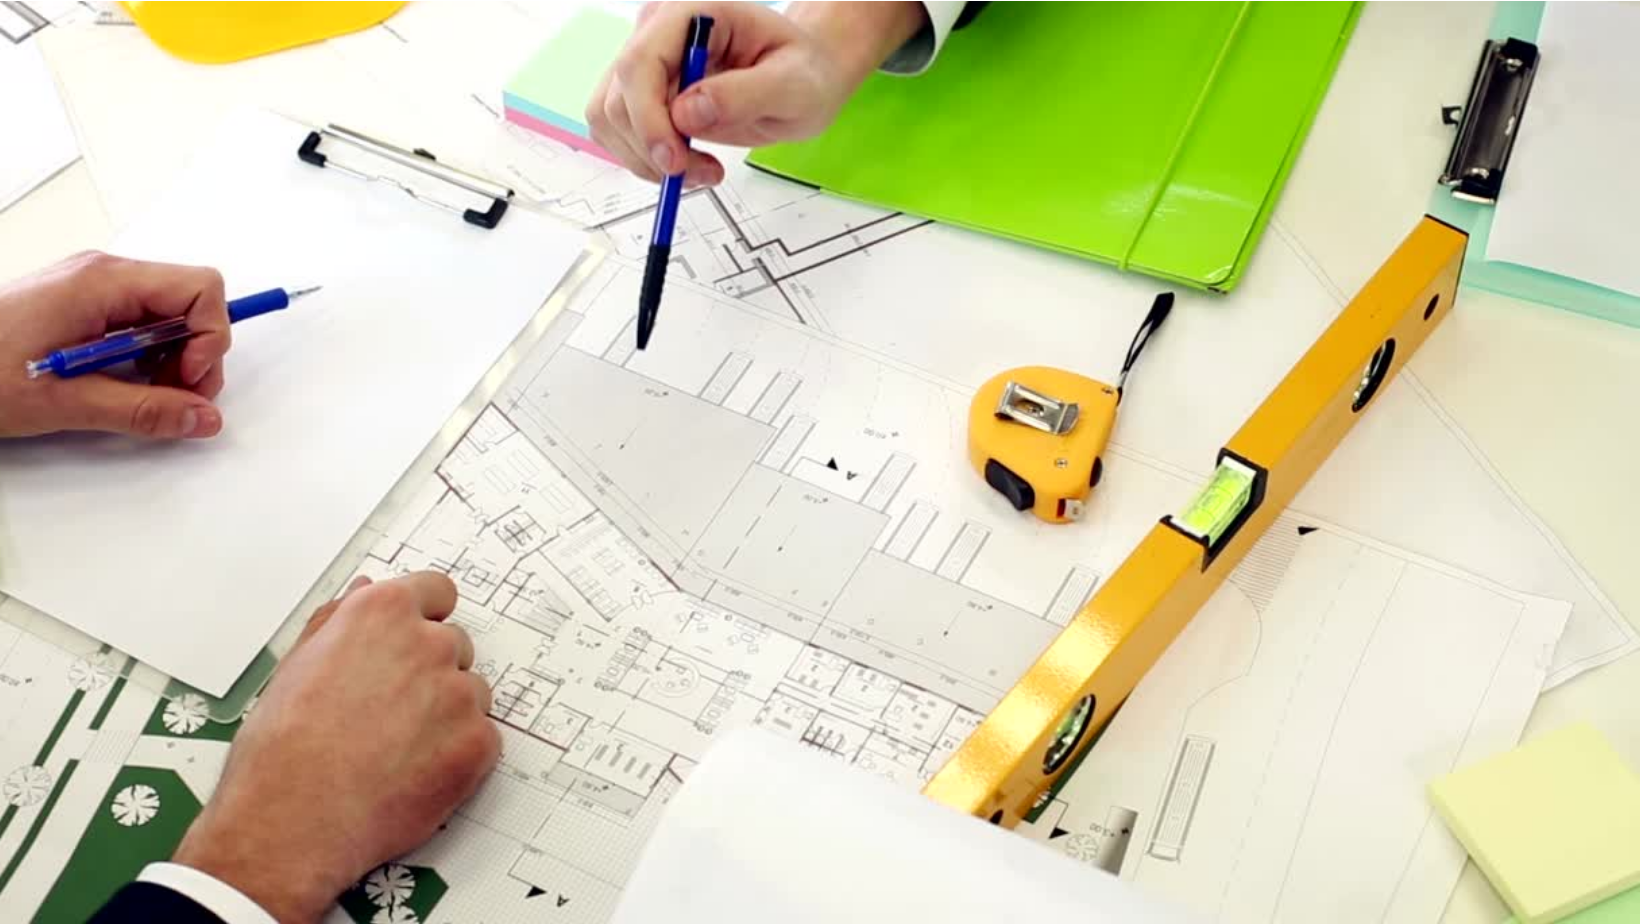 Contractor Construction and architect